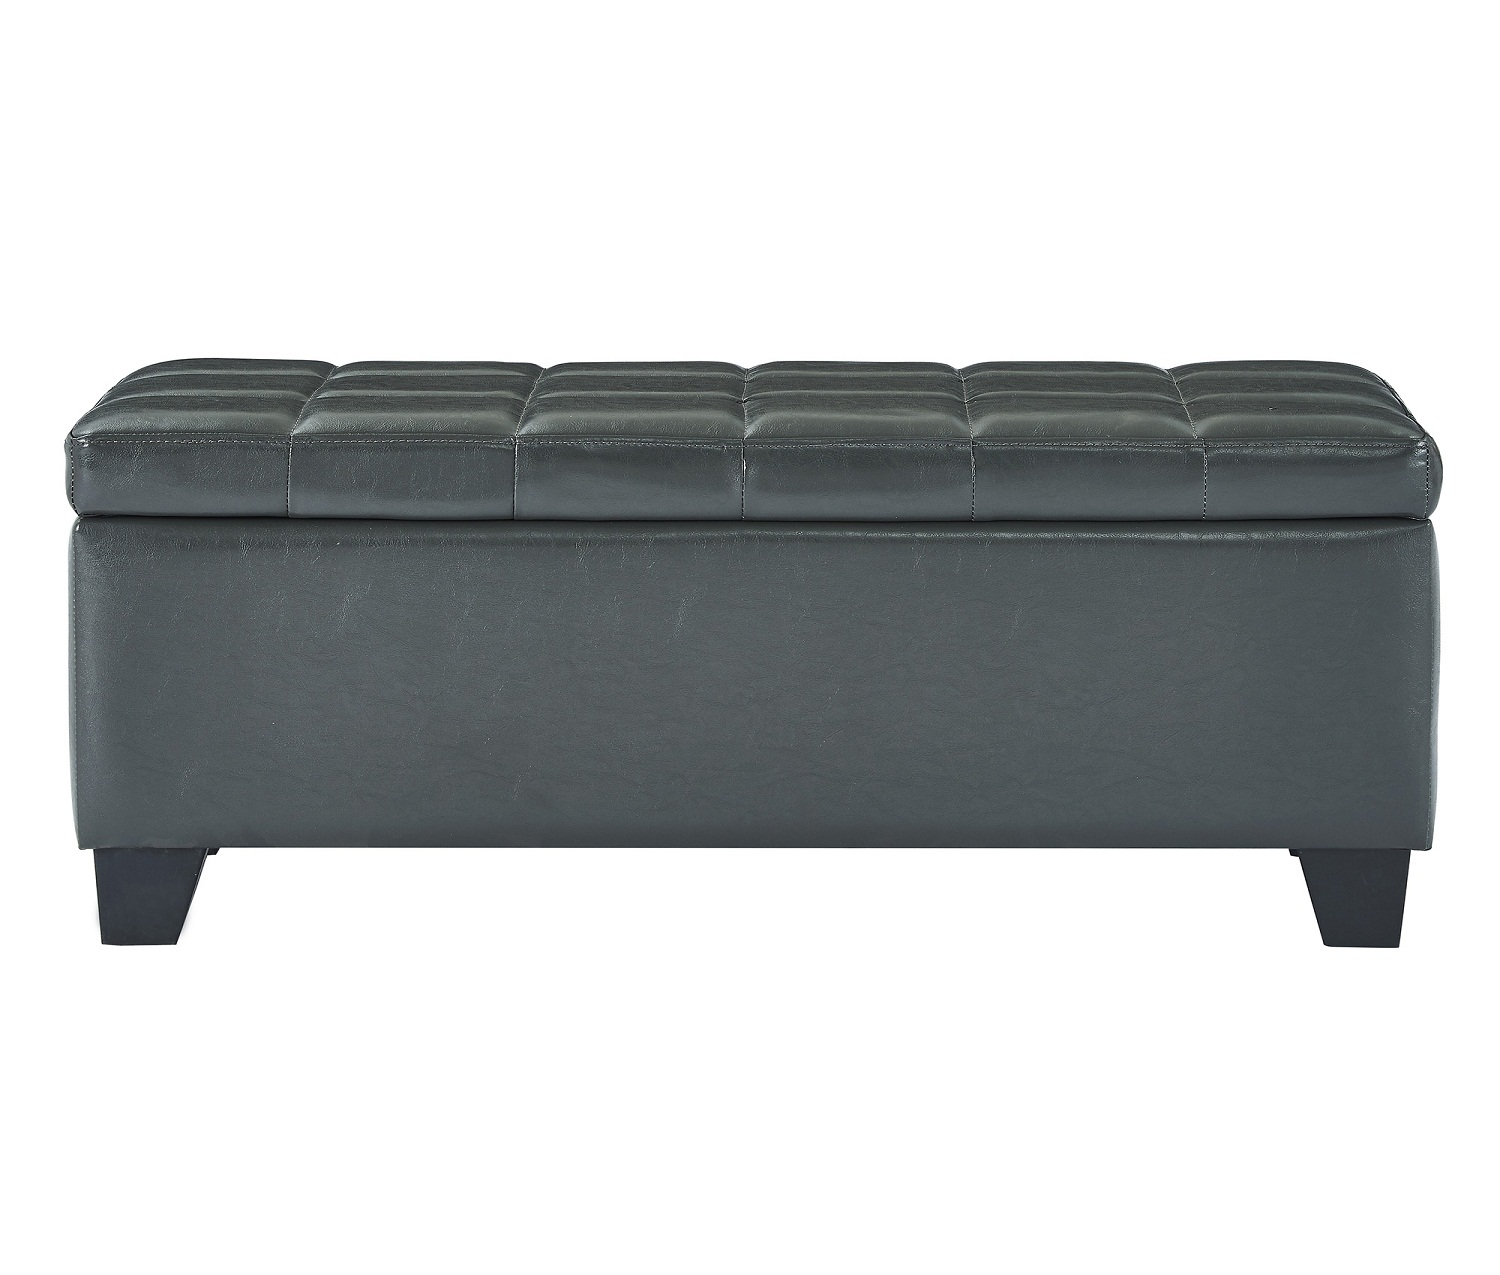 WINSTON-STORAGE OTTOMAN-GREY, 841173031862, Ottoman, WINSTON-STORAGE OTTOMAN-GREY from Dropship by Midha Furniture serving Brampton, Mississauga, Etobicoke, Toronto, Scraborough, Caledon, Cambridge, Oakville, Markham, Ajax, Pickering, Oshawa, Richmondhill, Kitchener, Hamilton, Cambridge, Waterloo and GTA area